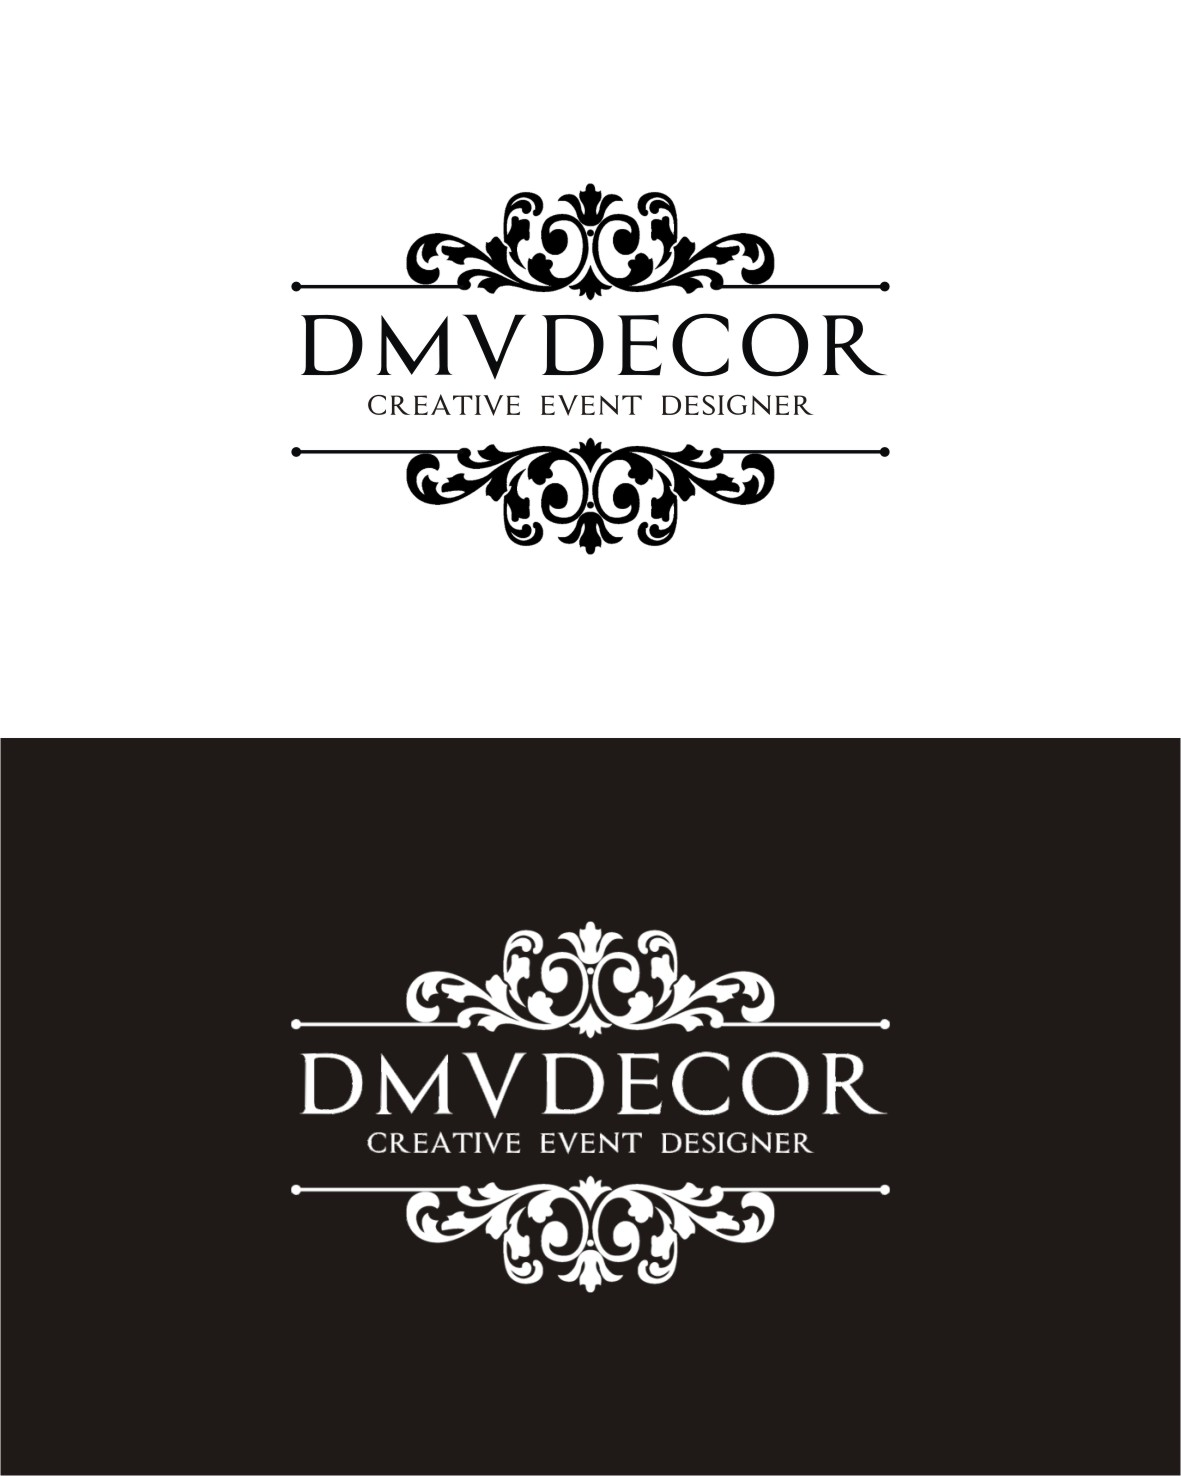 Logo Design by Lynx Graphics - Entry No. 167 in the Logo Design Contest dmvdecor Logo Design.